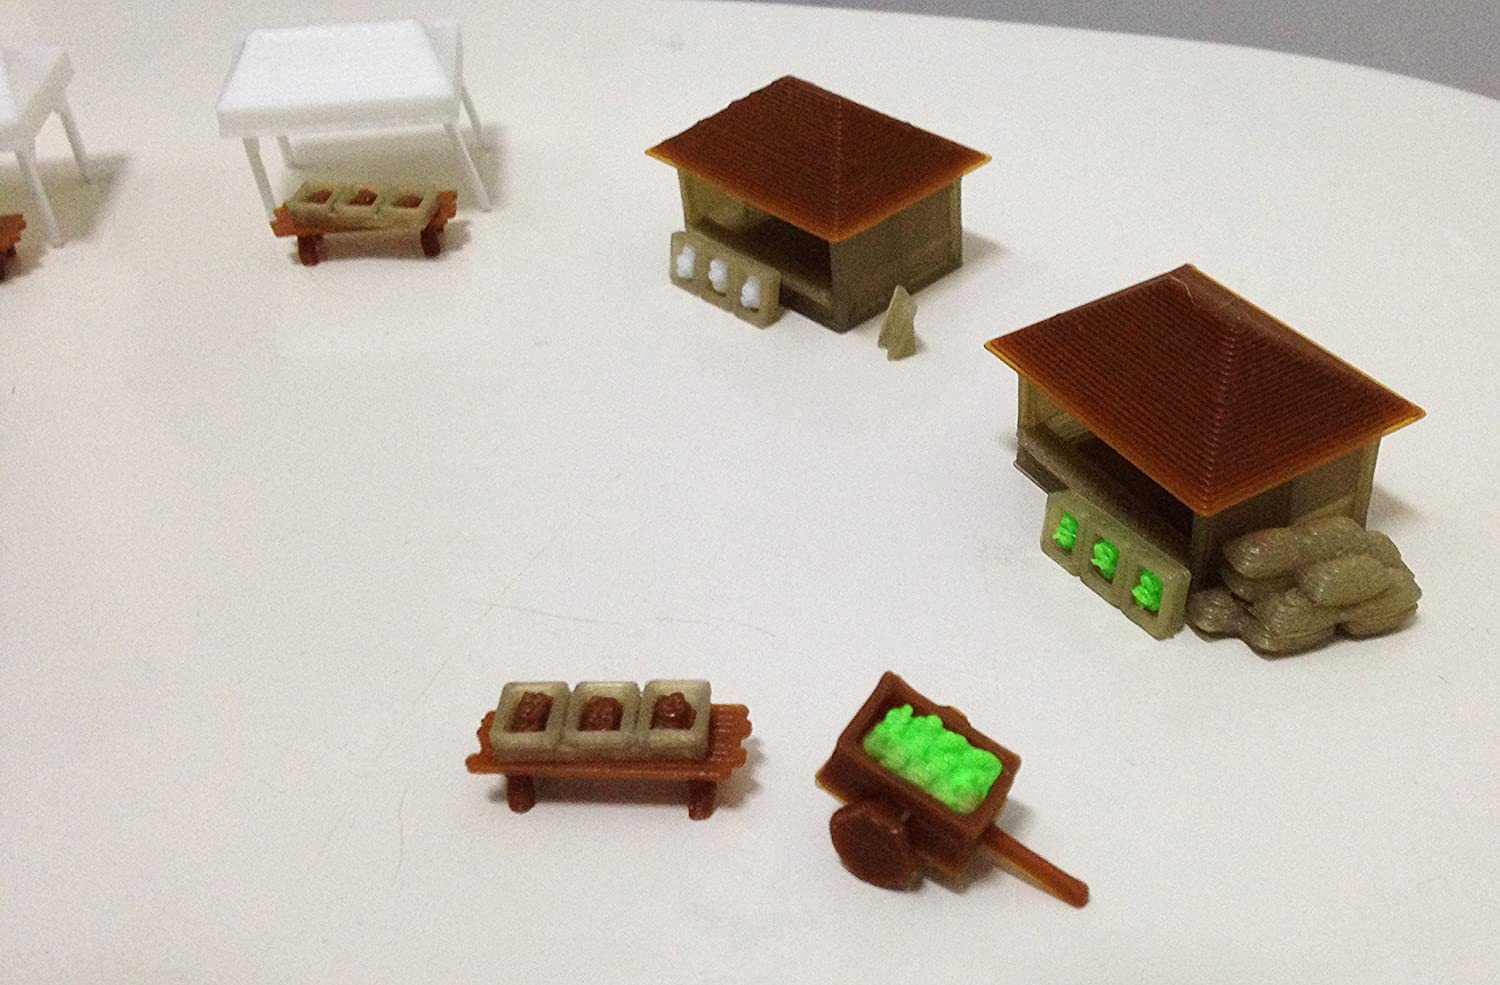 Outland Models Railway Miniature Food Shop Market and Accessories Set N Scale